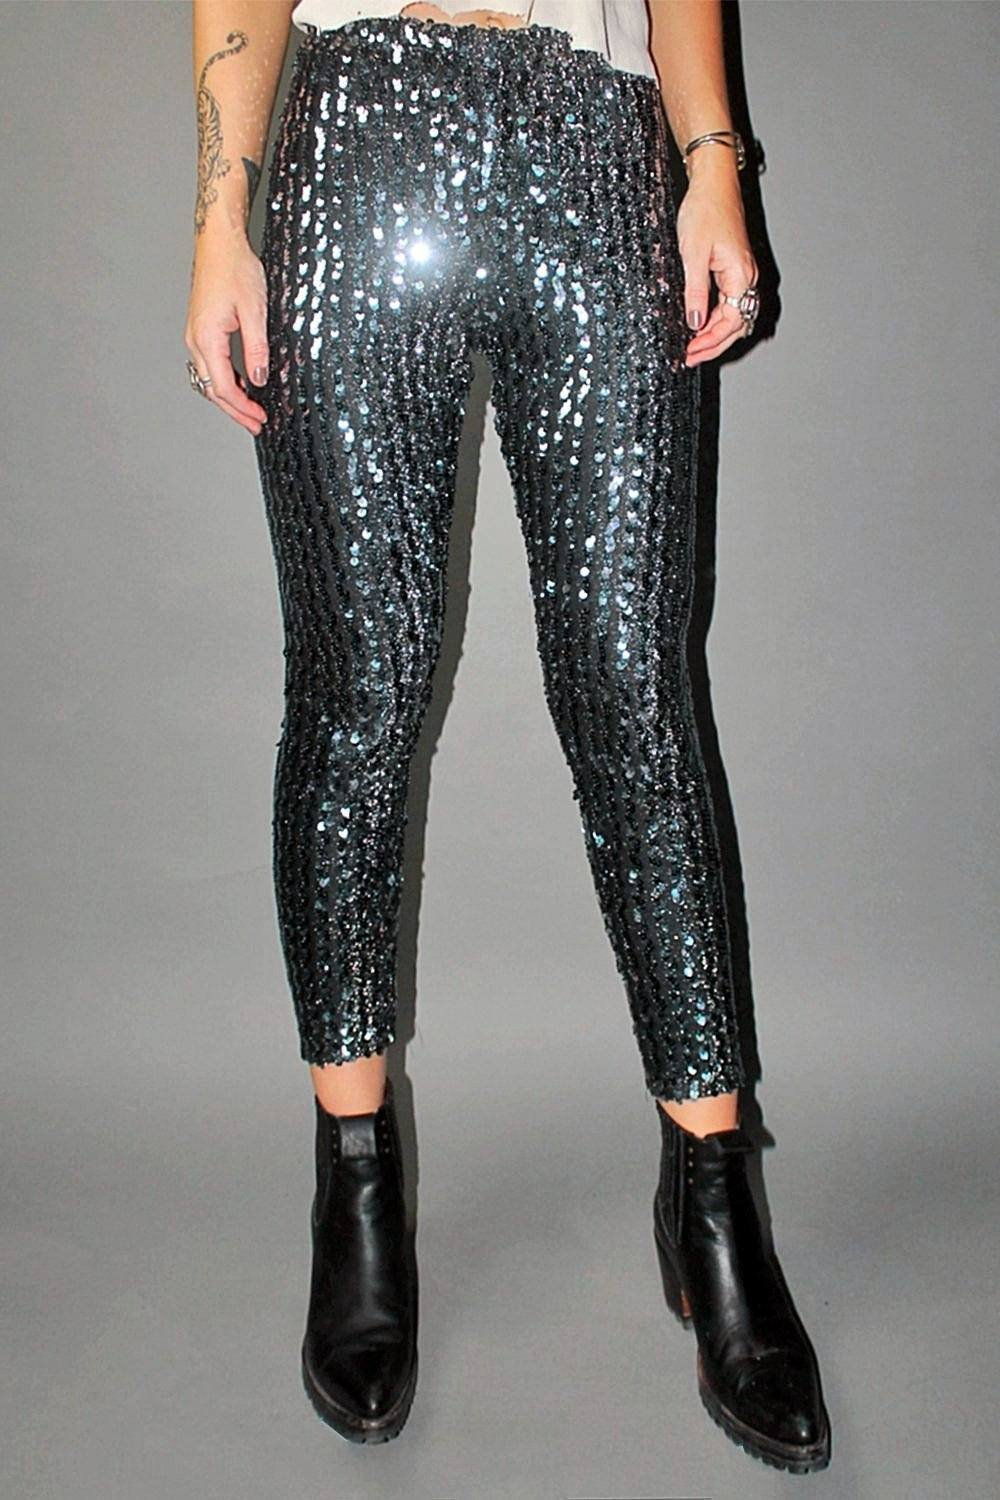 Boogie Nights Vintage Stretch Sequin Pants